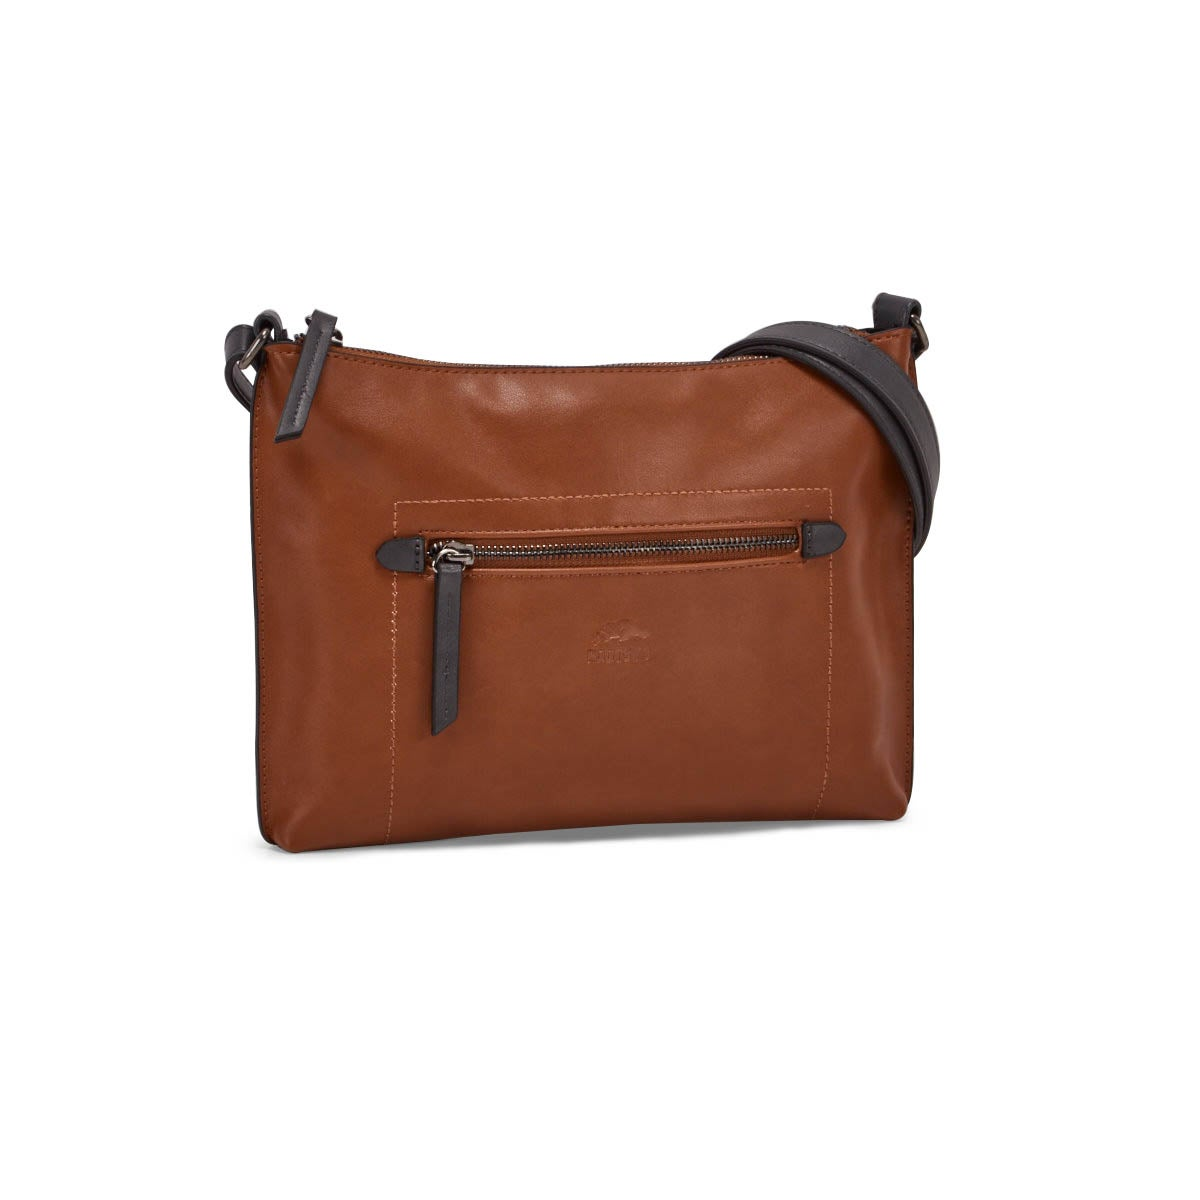 Lds Roots73 cgnc top zip crossbody